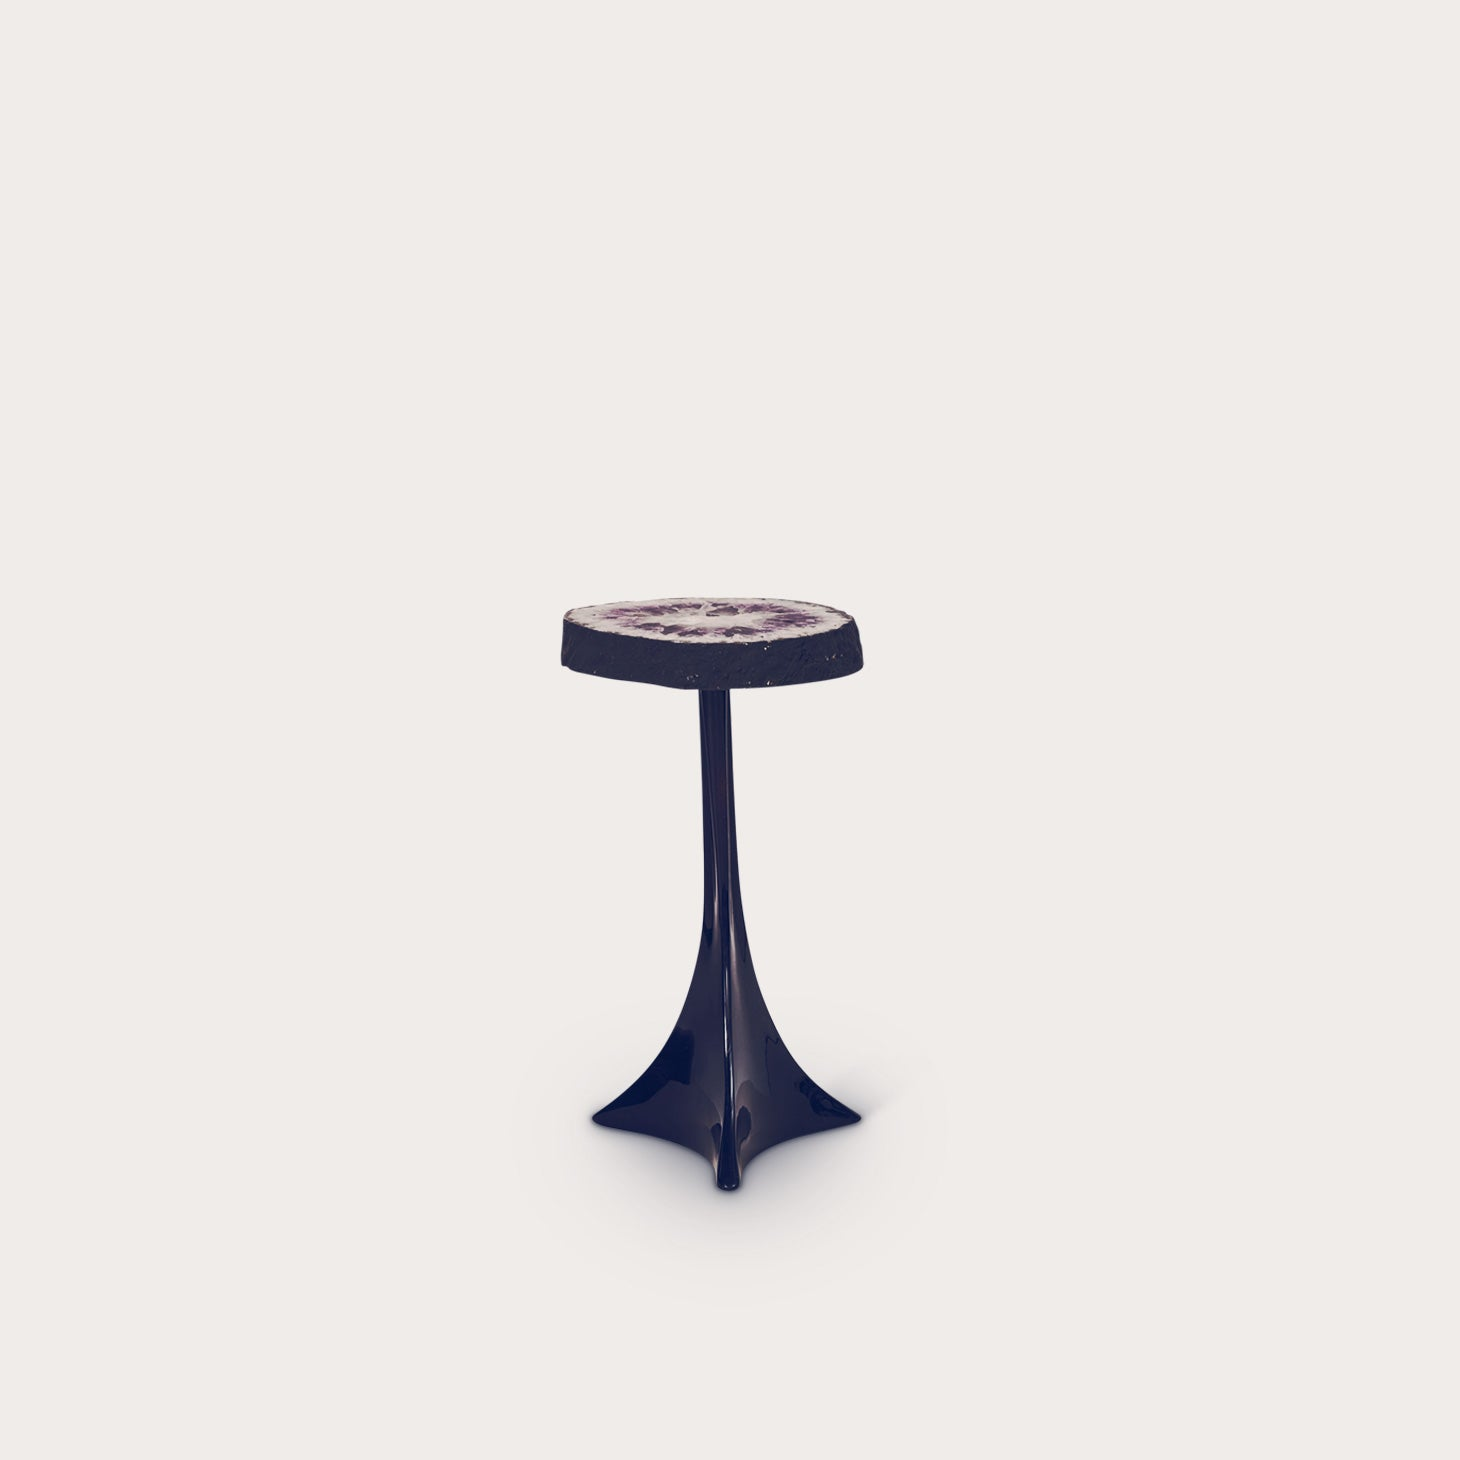 Rua Bela Cintra Tables Simone Coste Designer Furniture Sku: 992-230-10060